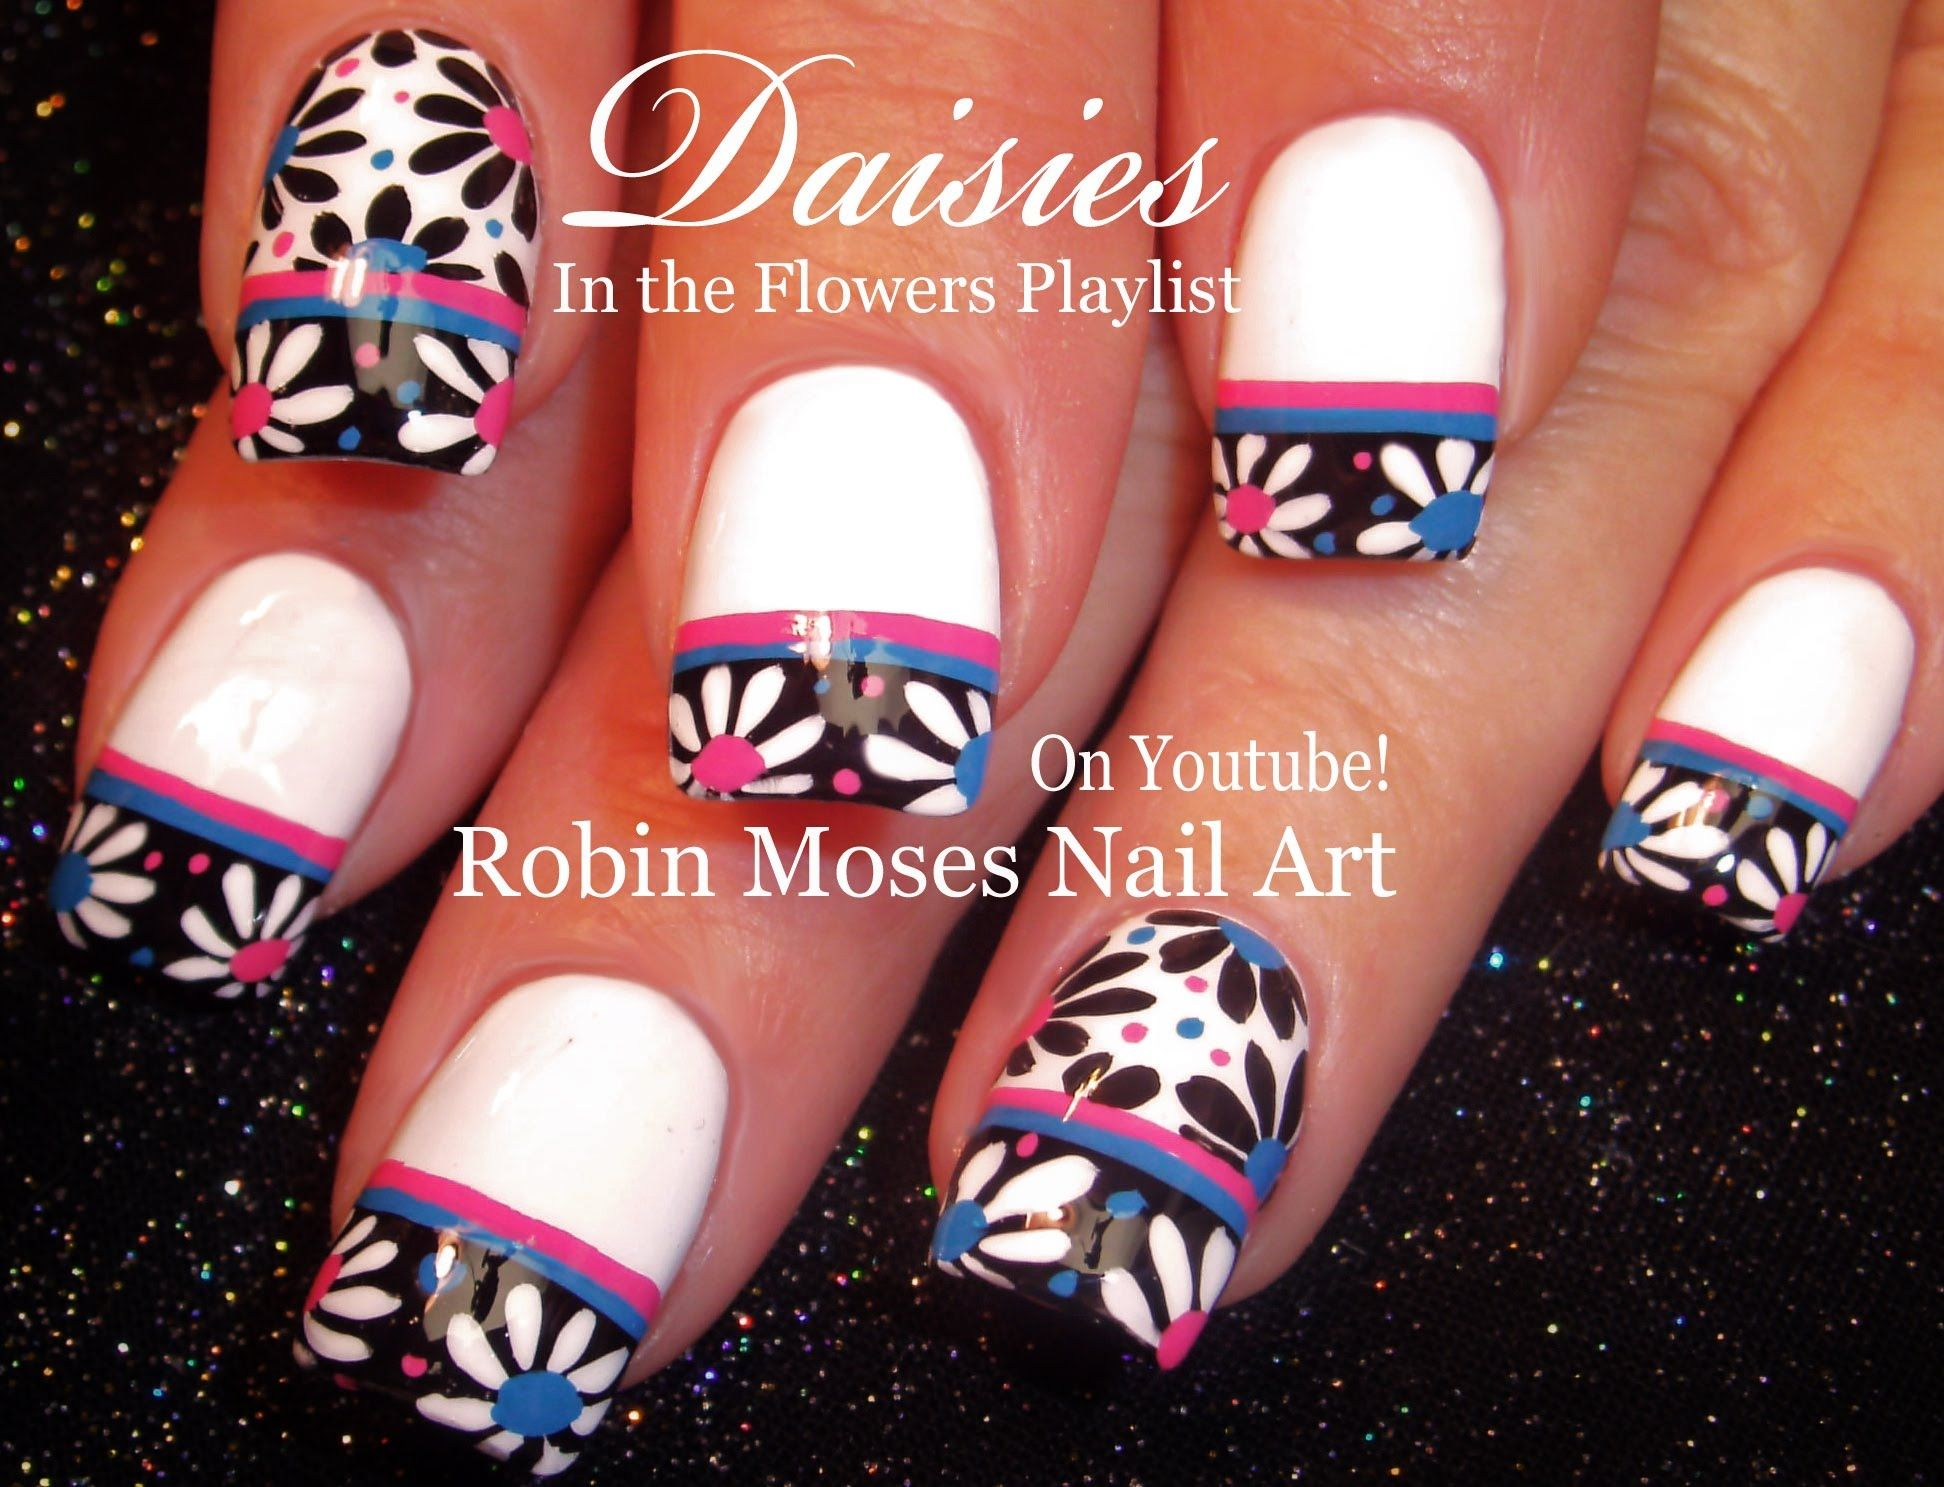 736 best Robin Moses nail art images on Pinterest | Nail art videos ...